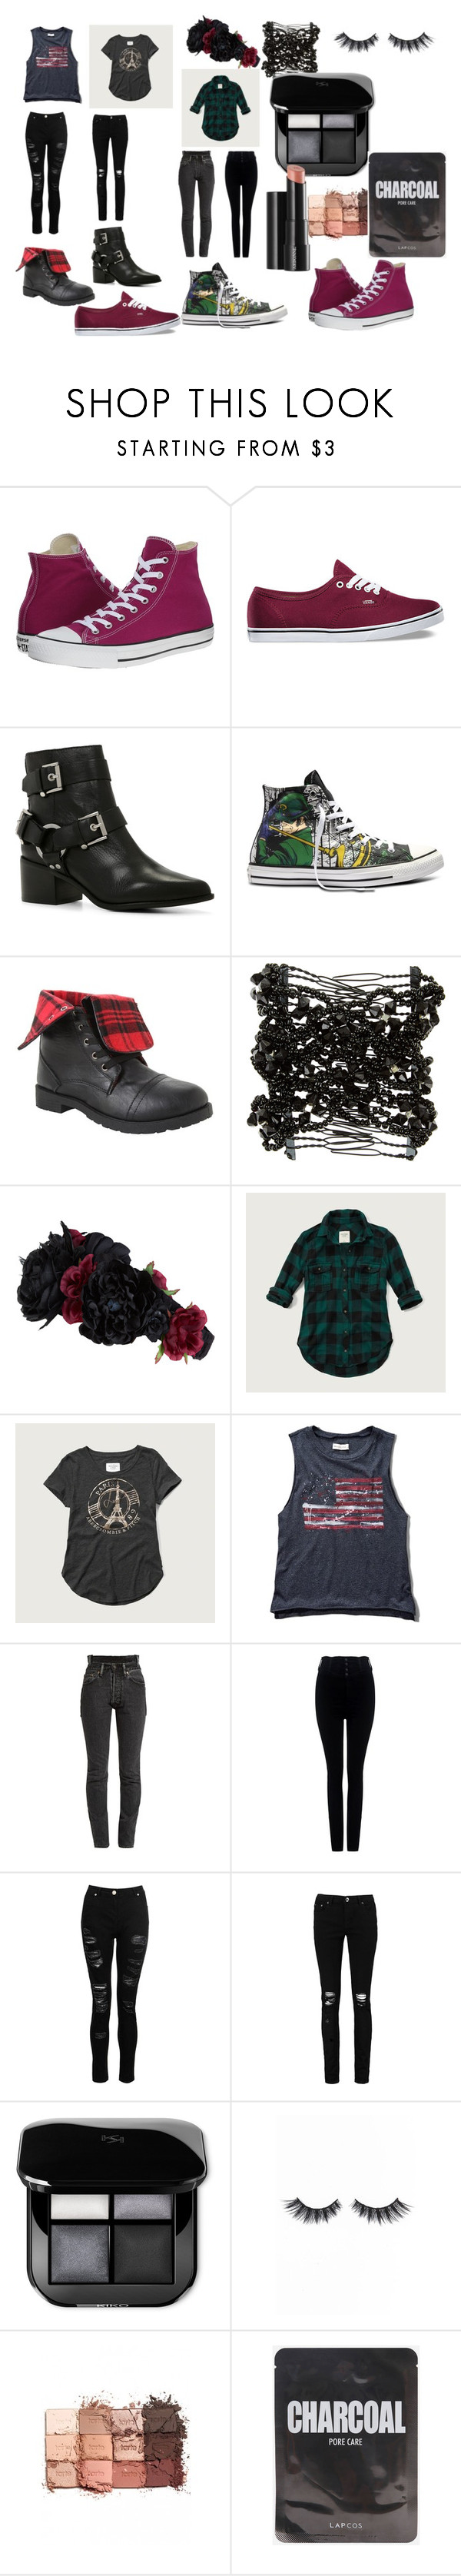 """""""Untitled #282"""" by toxicupcakes on Polyvore featuring Converse, Vans, ALDO, Accessorize, Abercrombie & Fitch, Vetements, Citizens of Humanity, Dorothy Perkins, Boohoo and Violet Voss"""